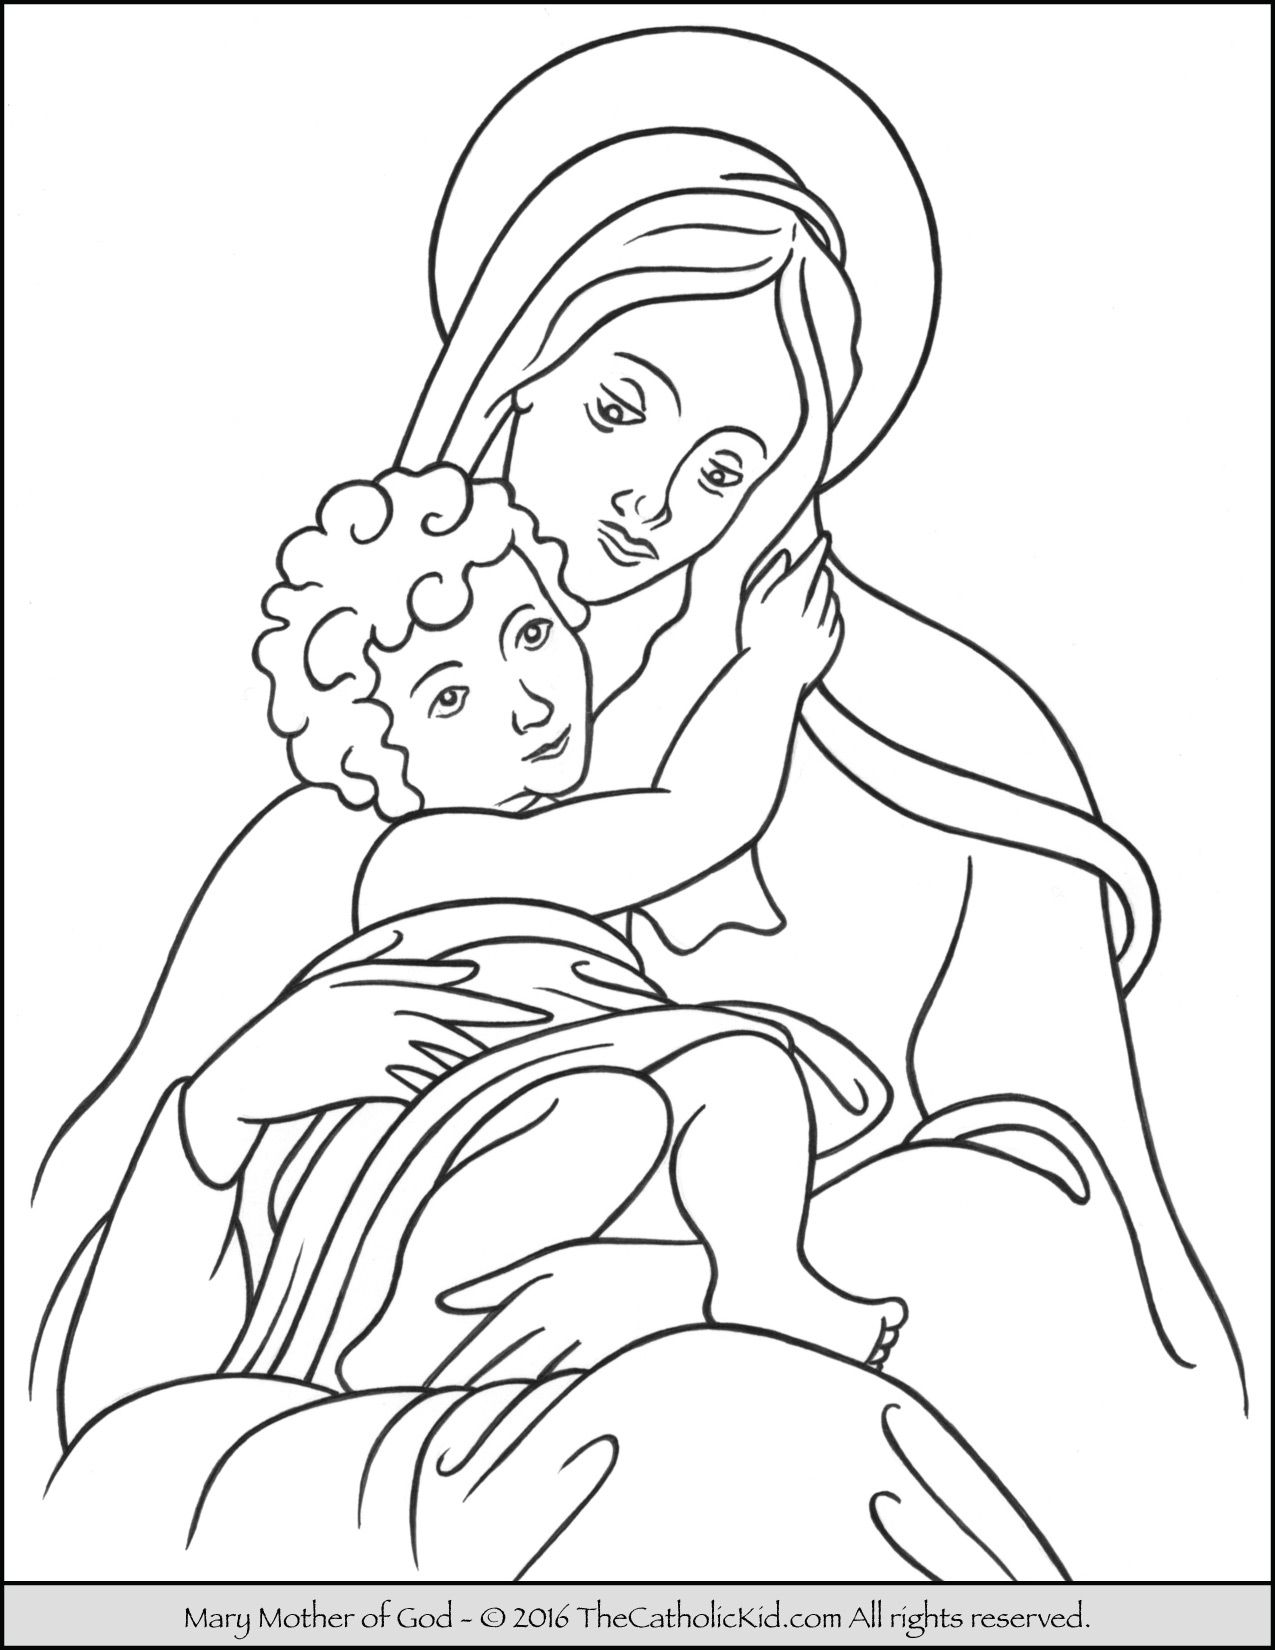 Free clipart crowing mary mother of god. Coloring page saints our